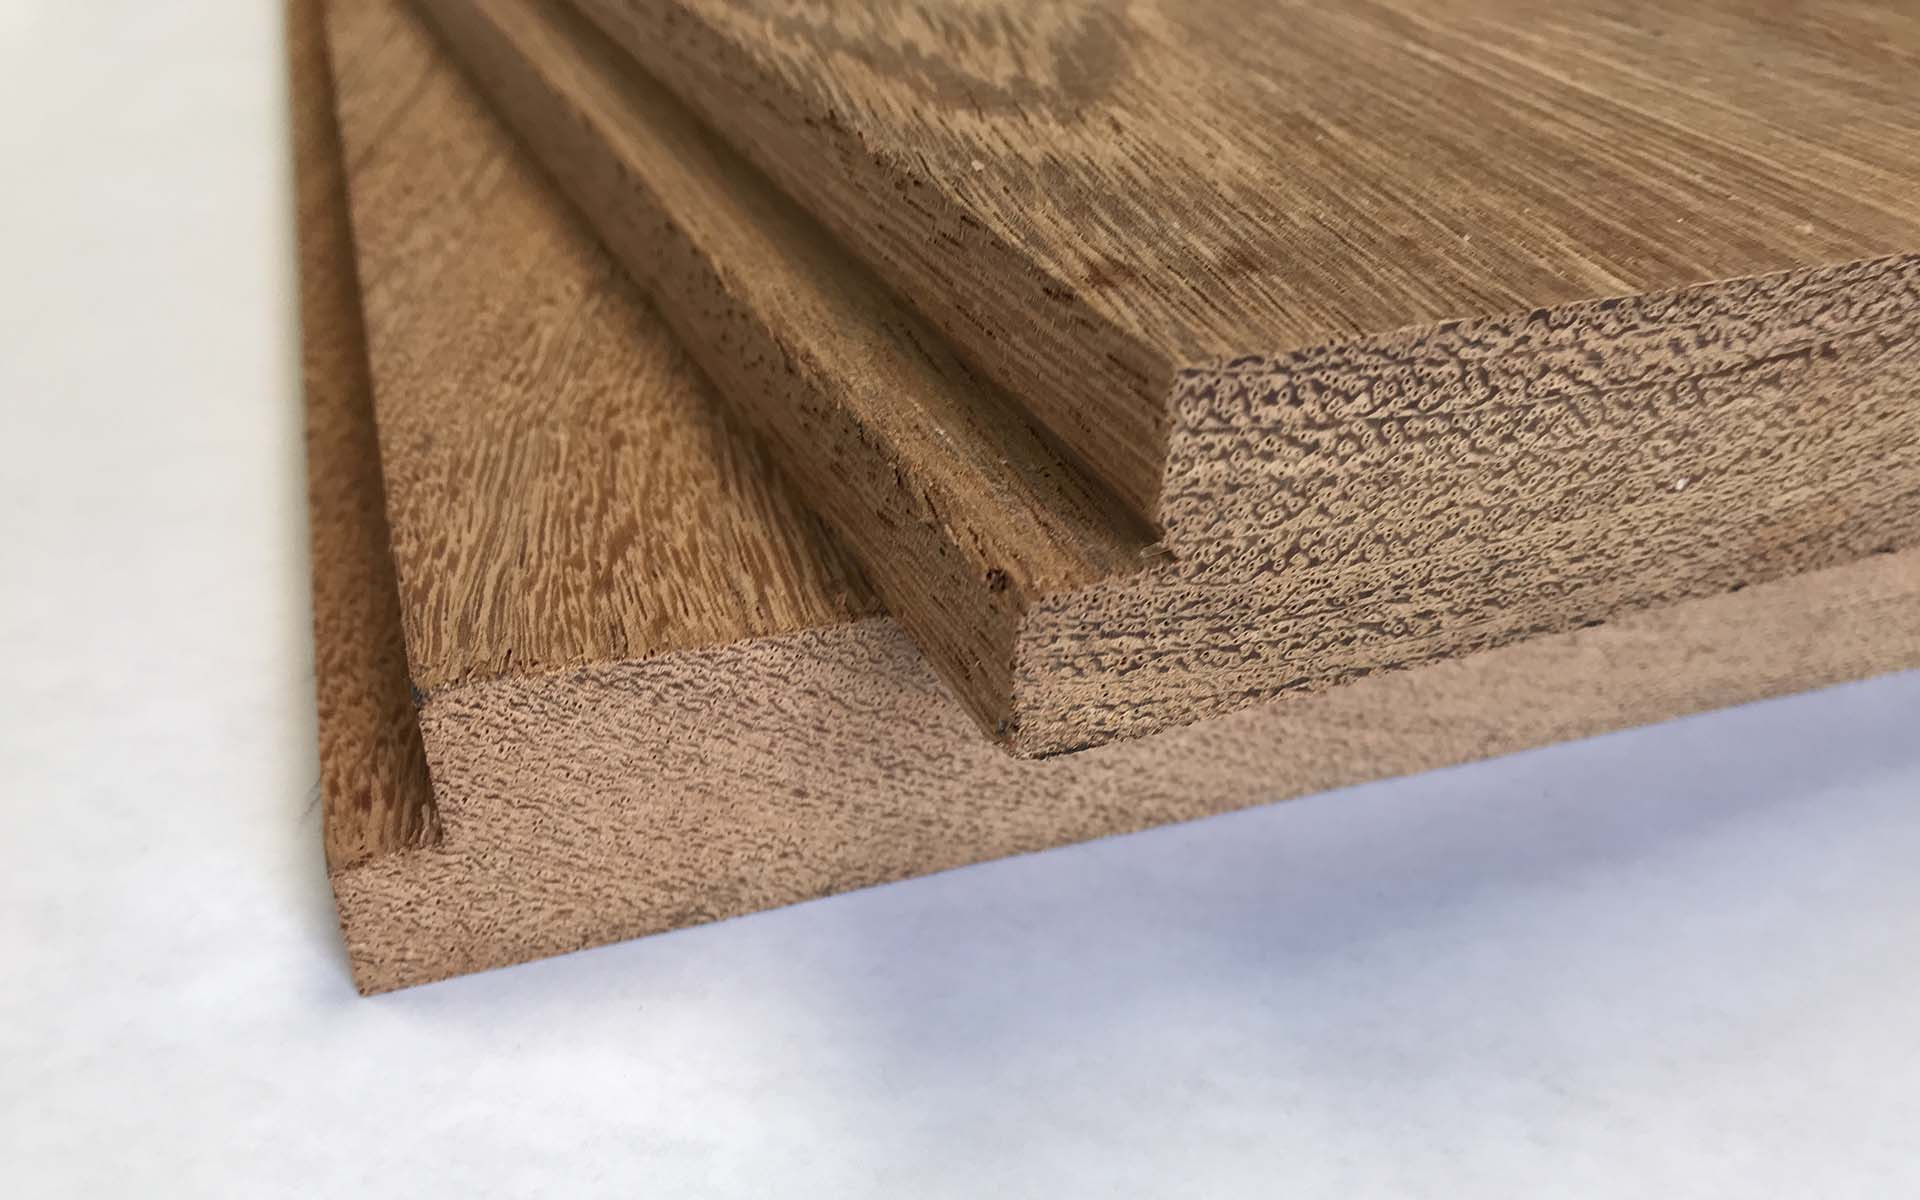 southern hardwood floor supply richmond va of buy trailer decking apitong shiplap rough boards truck flooring regarding 3 angelim pedra shiplap close up